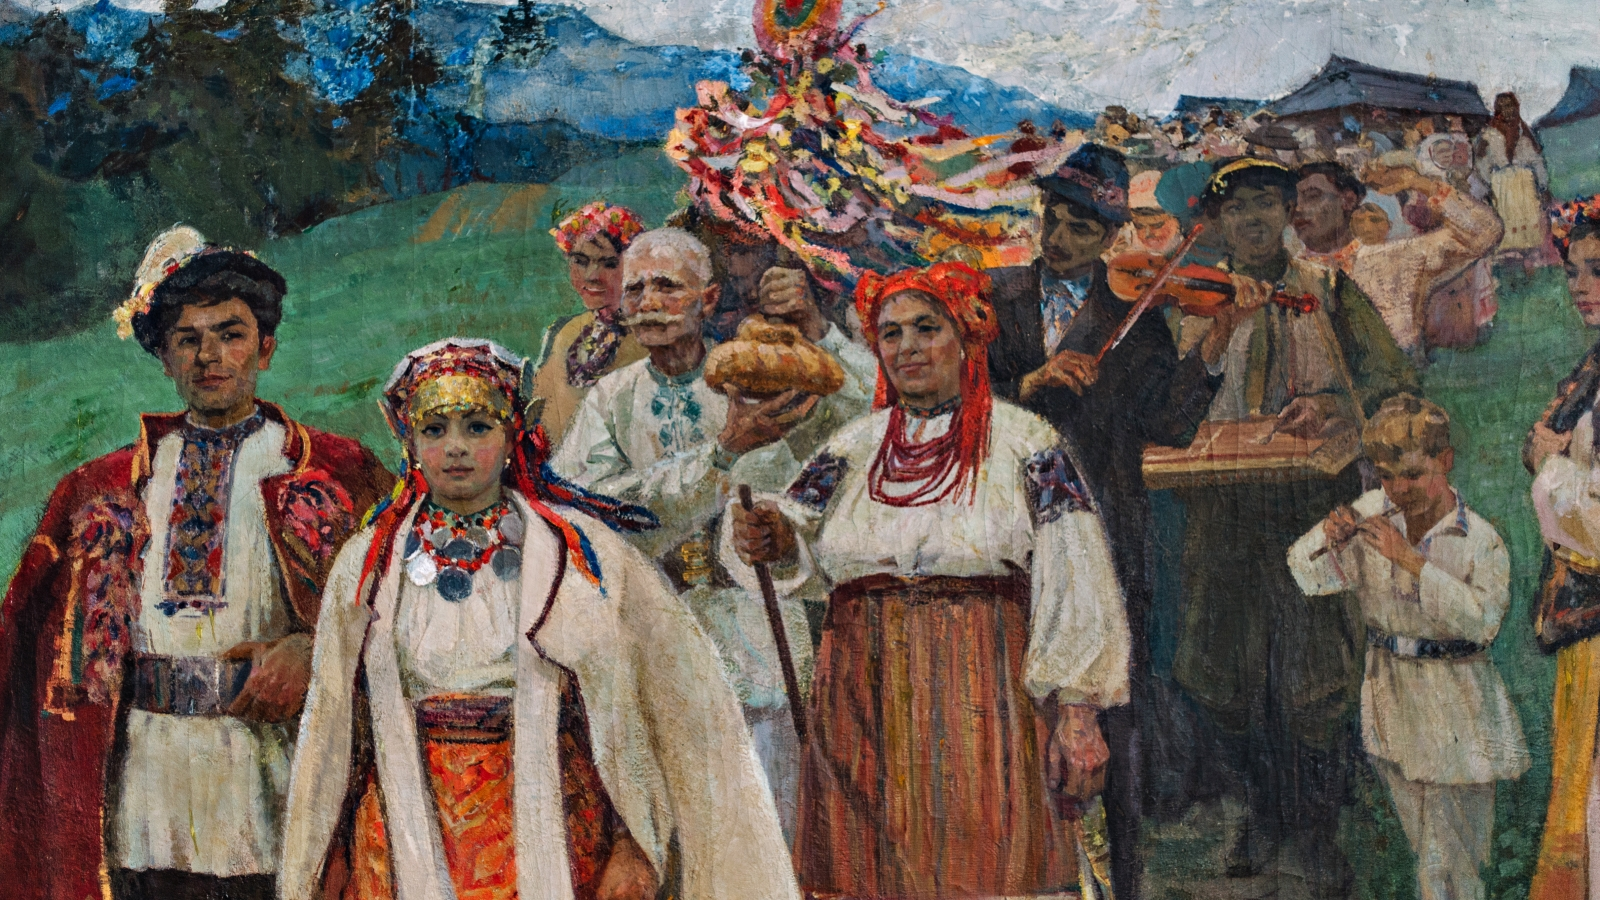 Painting at the museum of the Ukrainian culture and folk art named after Ivan Honchar (Kyiv, Ukraine)